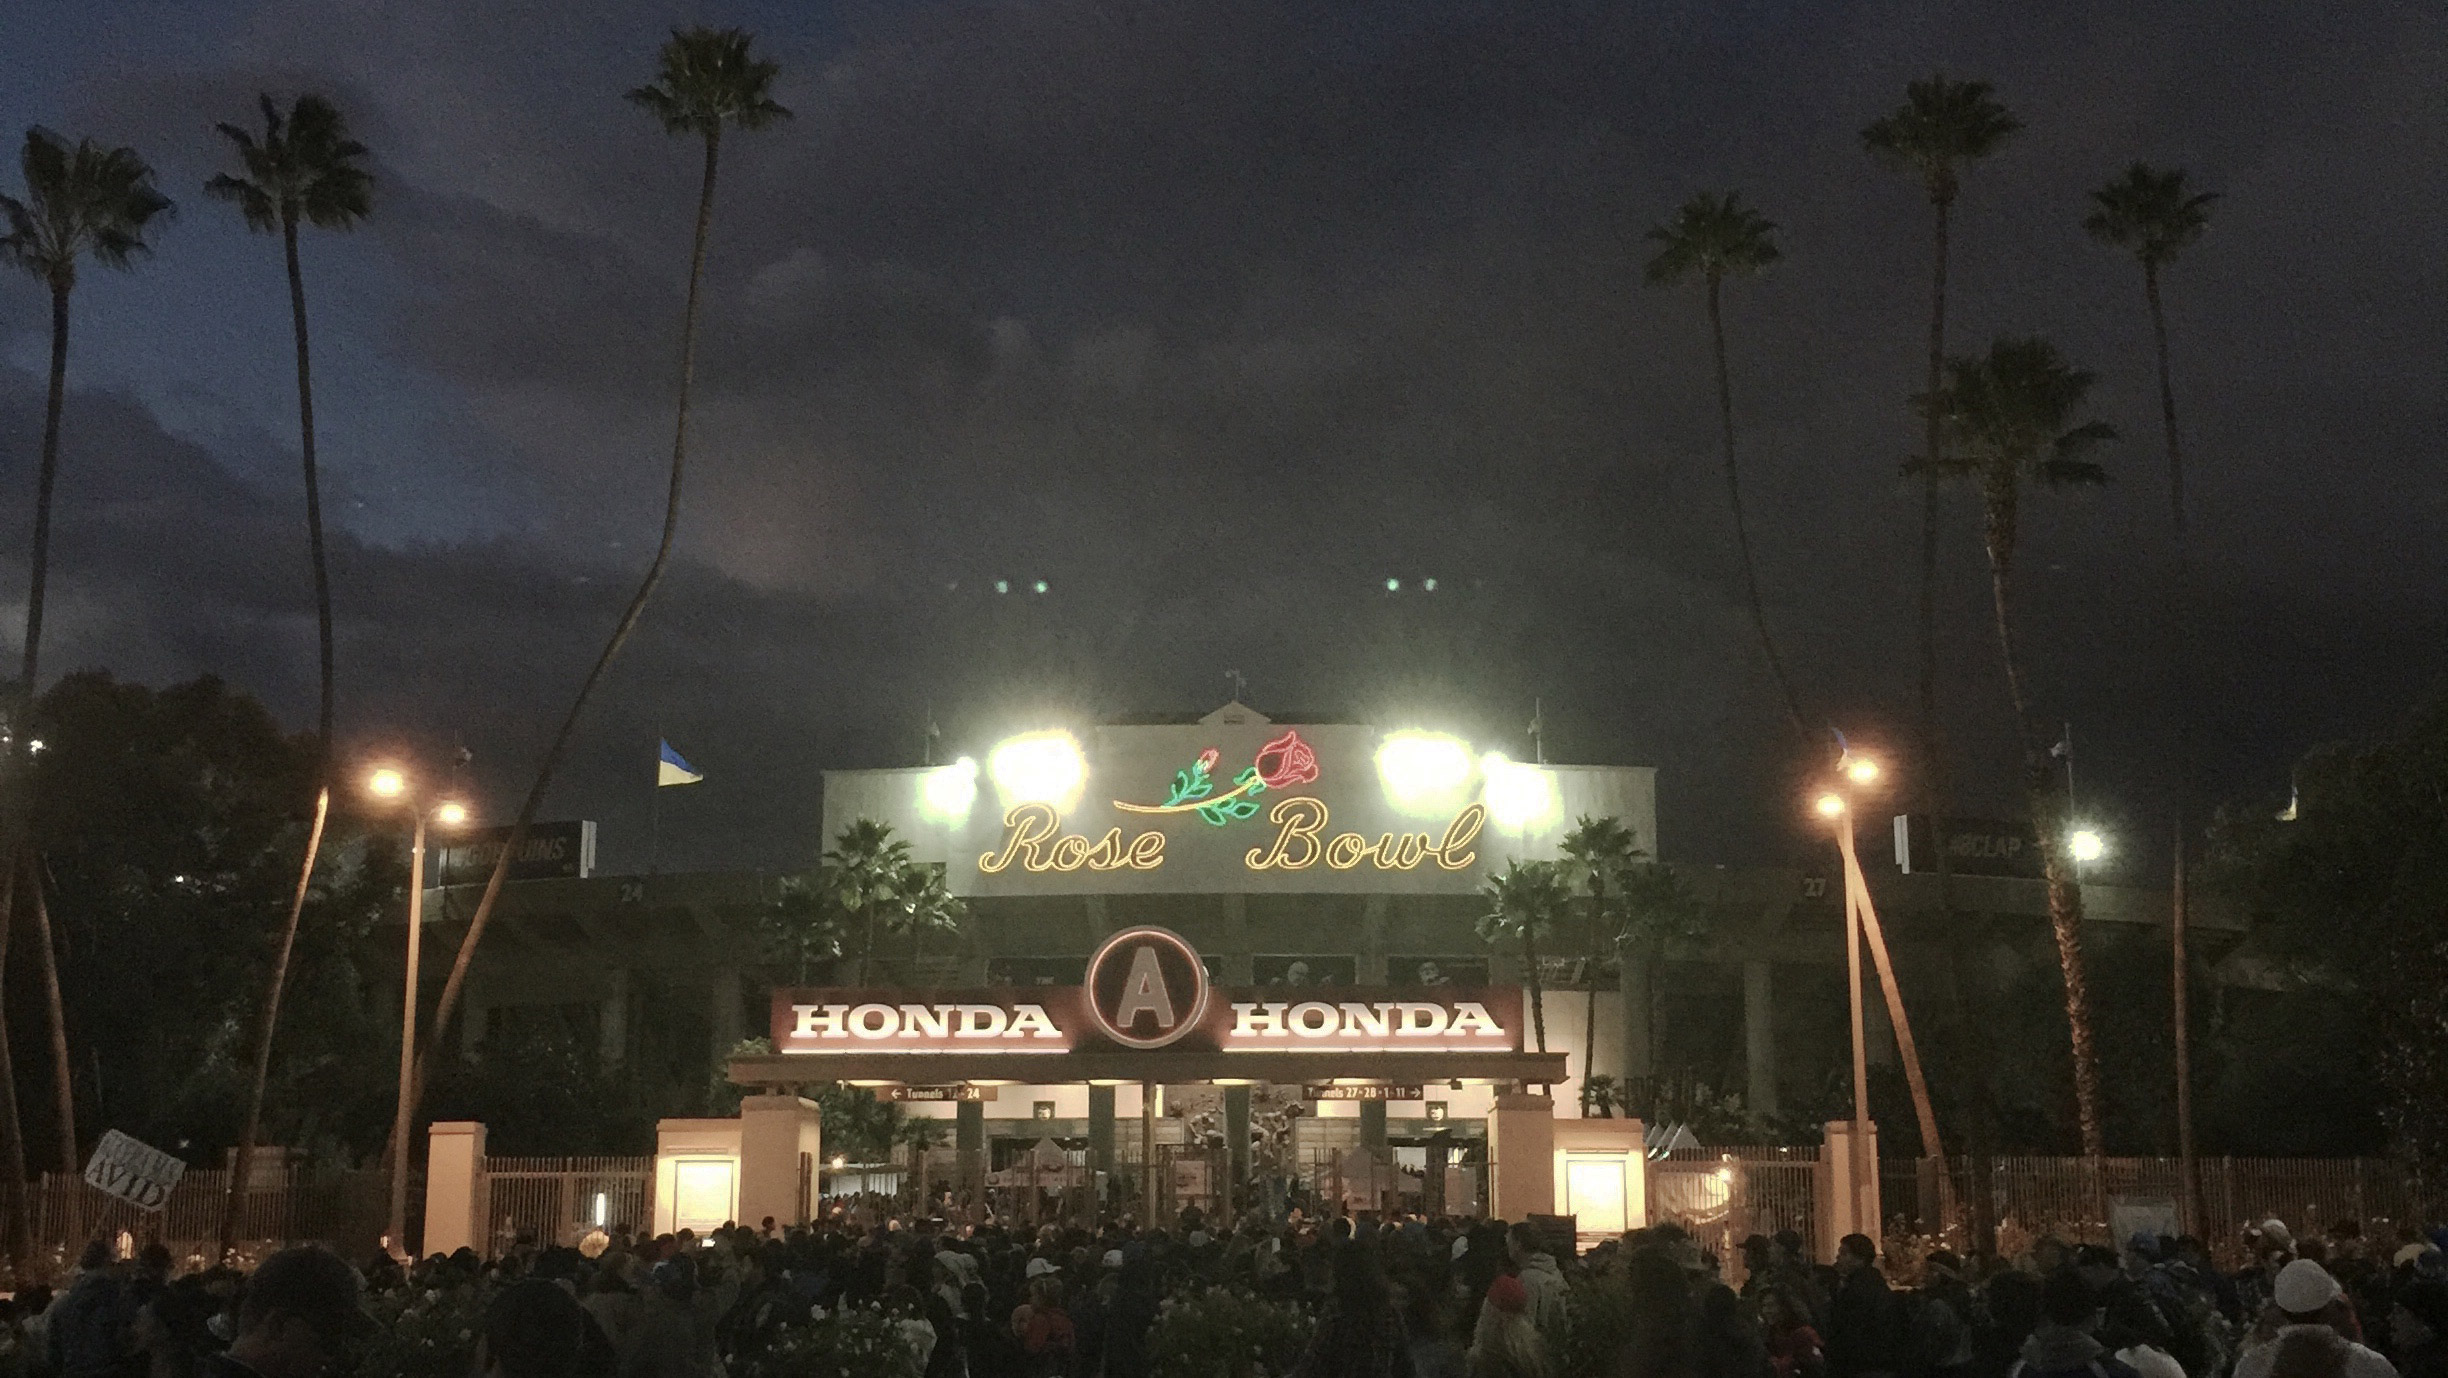 Went to see UCLA Bruins win again at the Rose Bowl